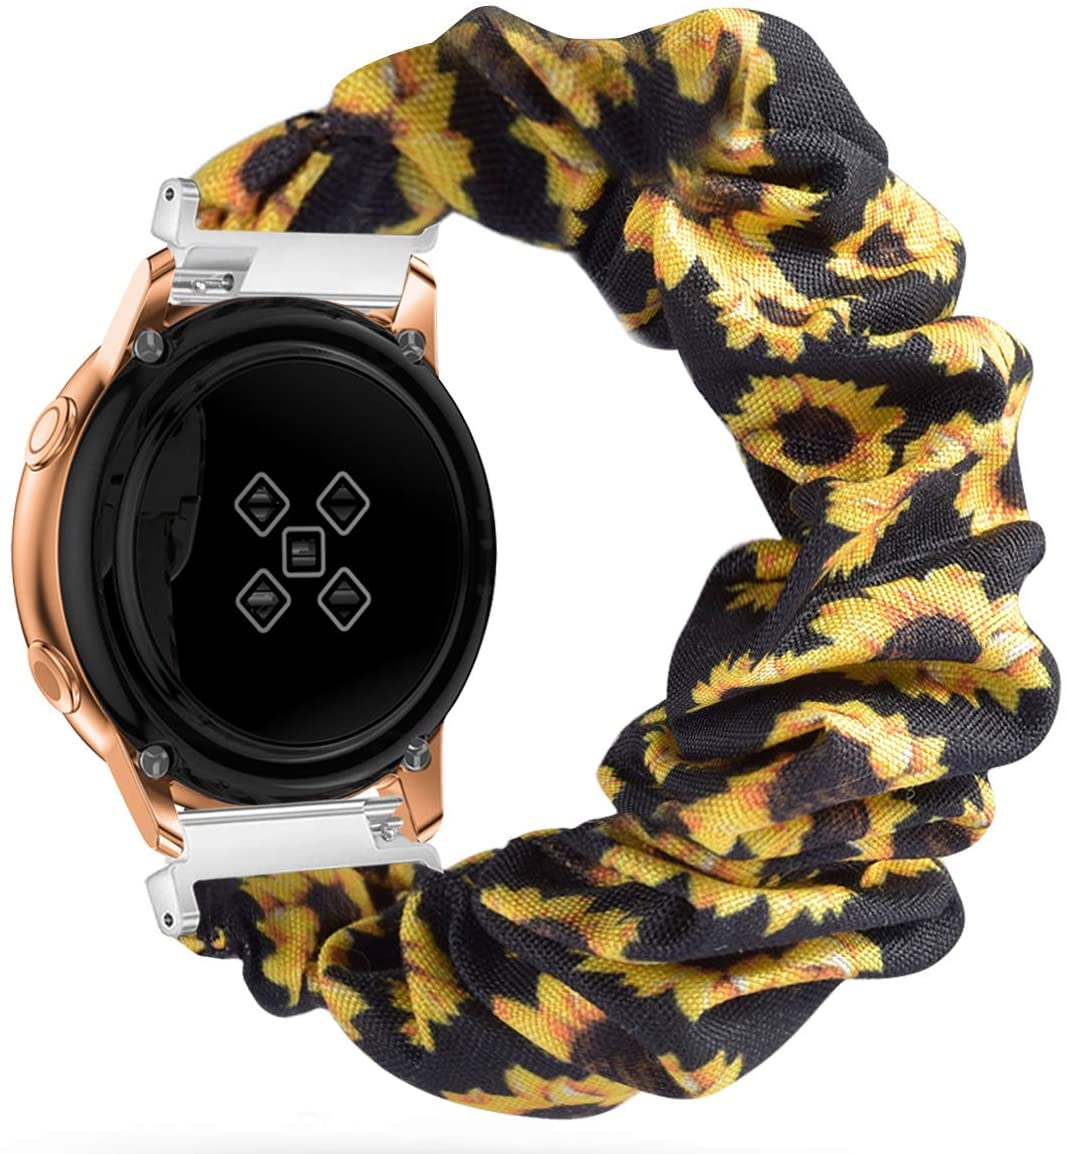 Watbro Compatible with TicWatch C2,20mm Scrunchie Band,Replacement Wristband Pattern Cute Band Straps for Ticwatch C2 for Women